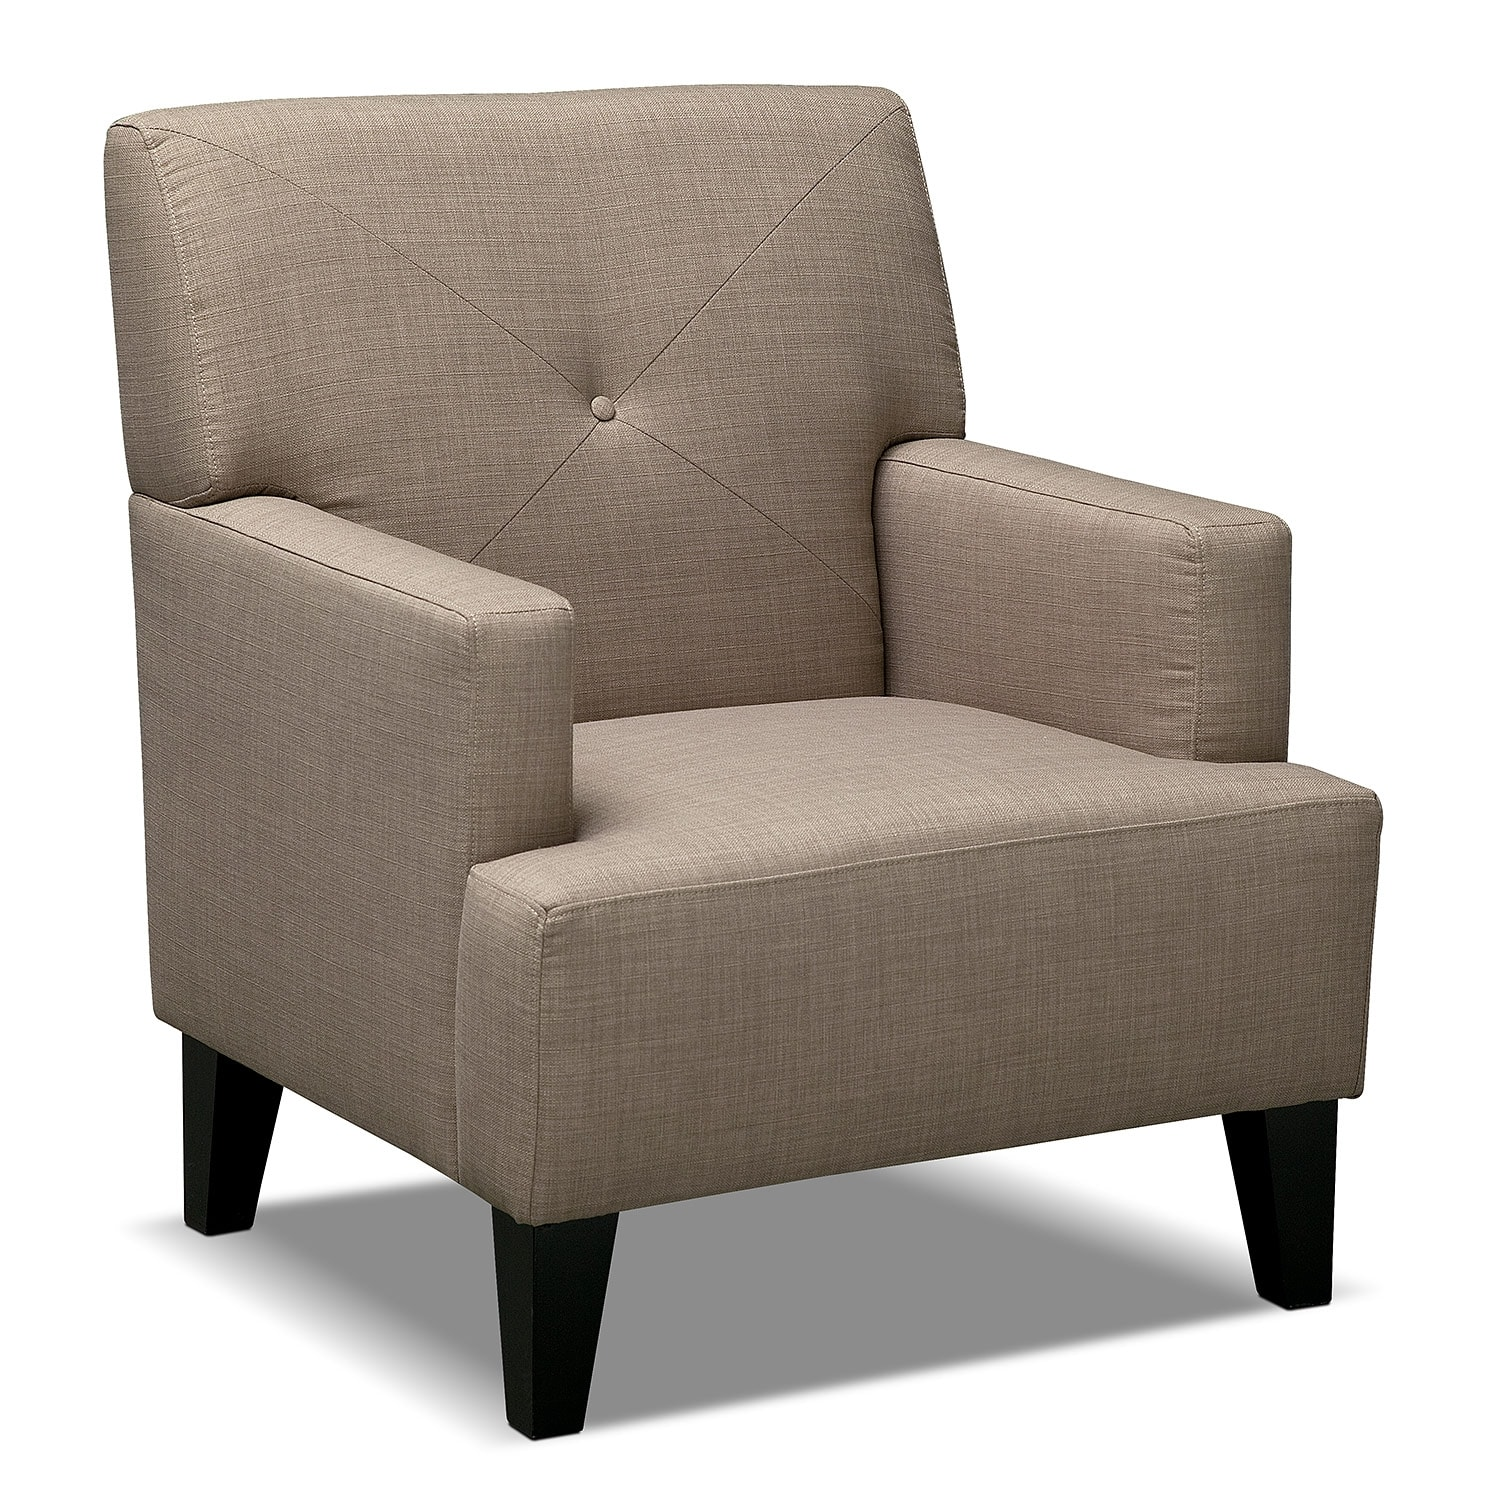 Accent chair avalon wheat value city furniture for Accent furniture